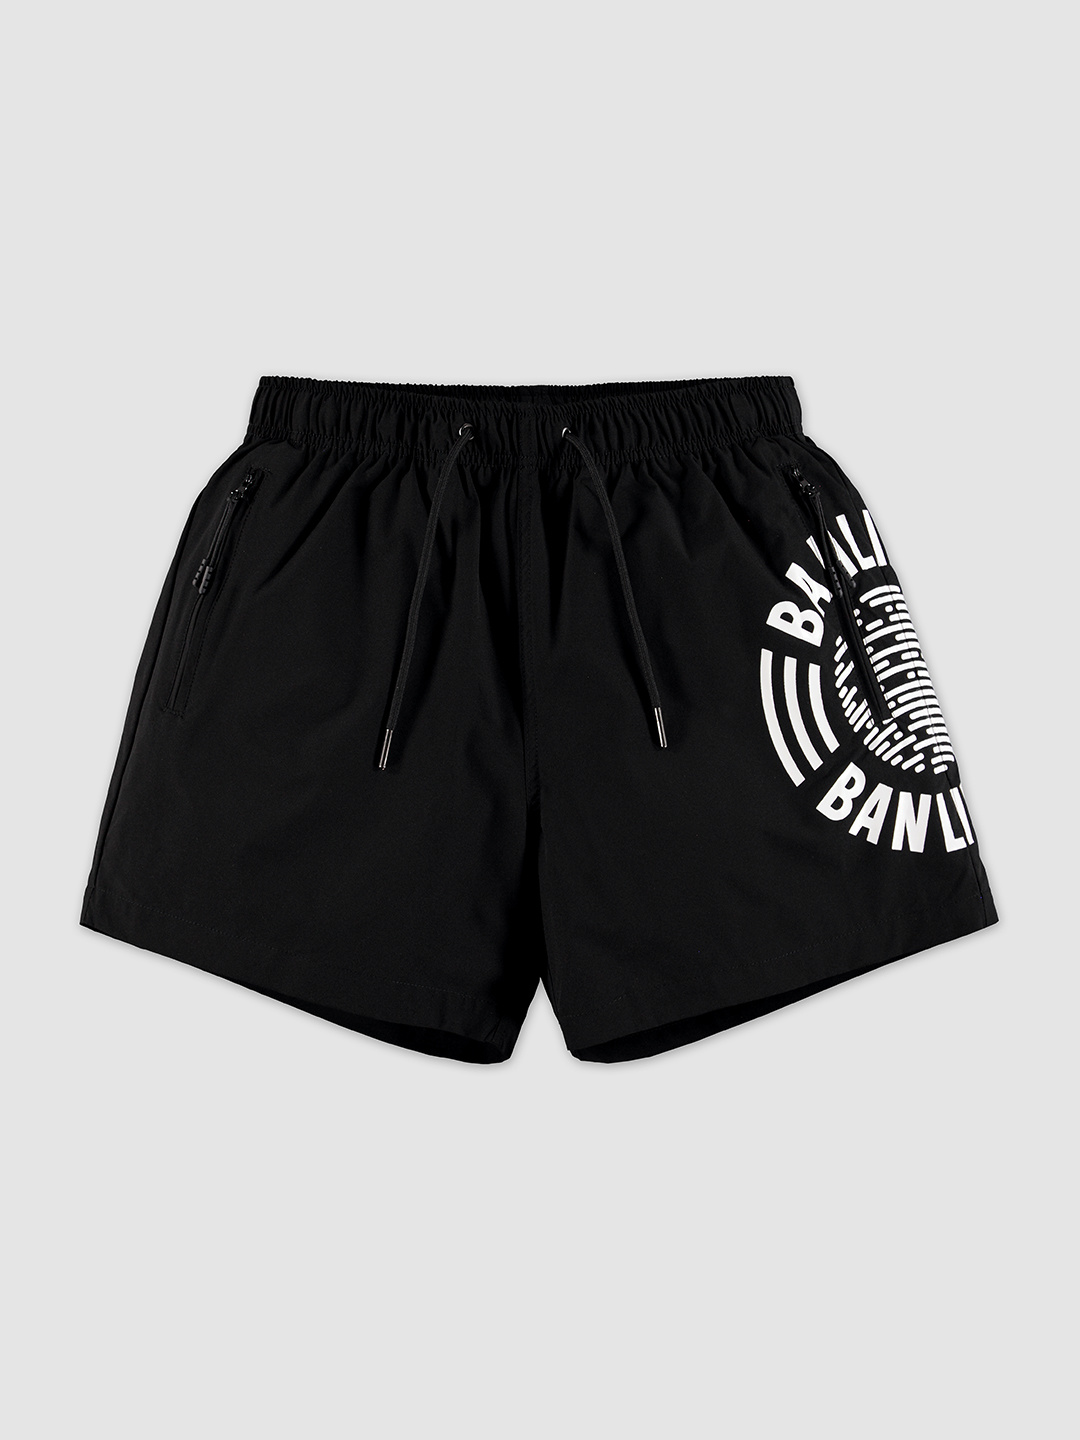 Global Swimshort Black